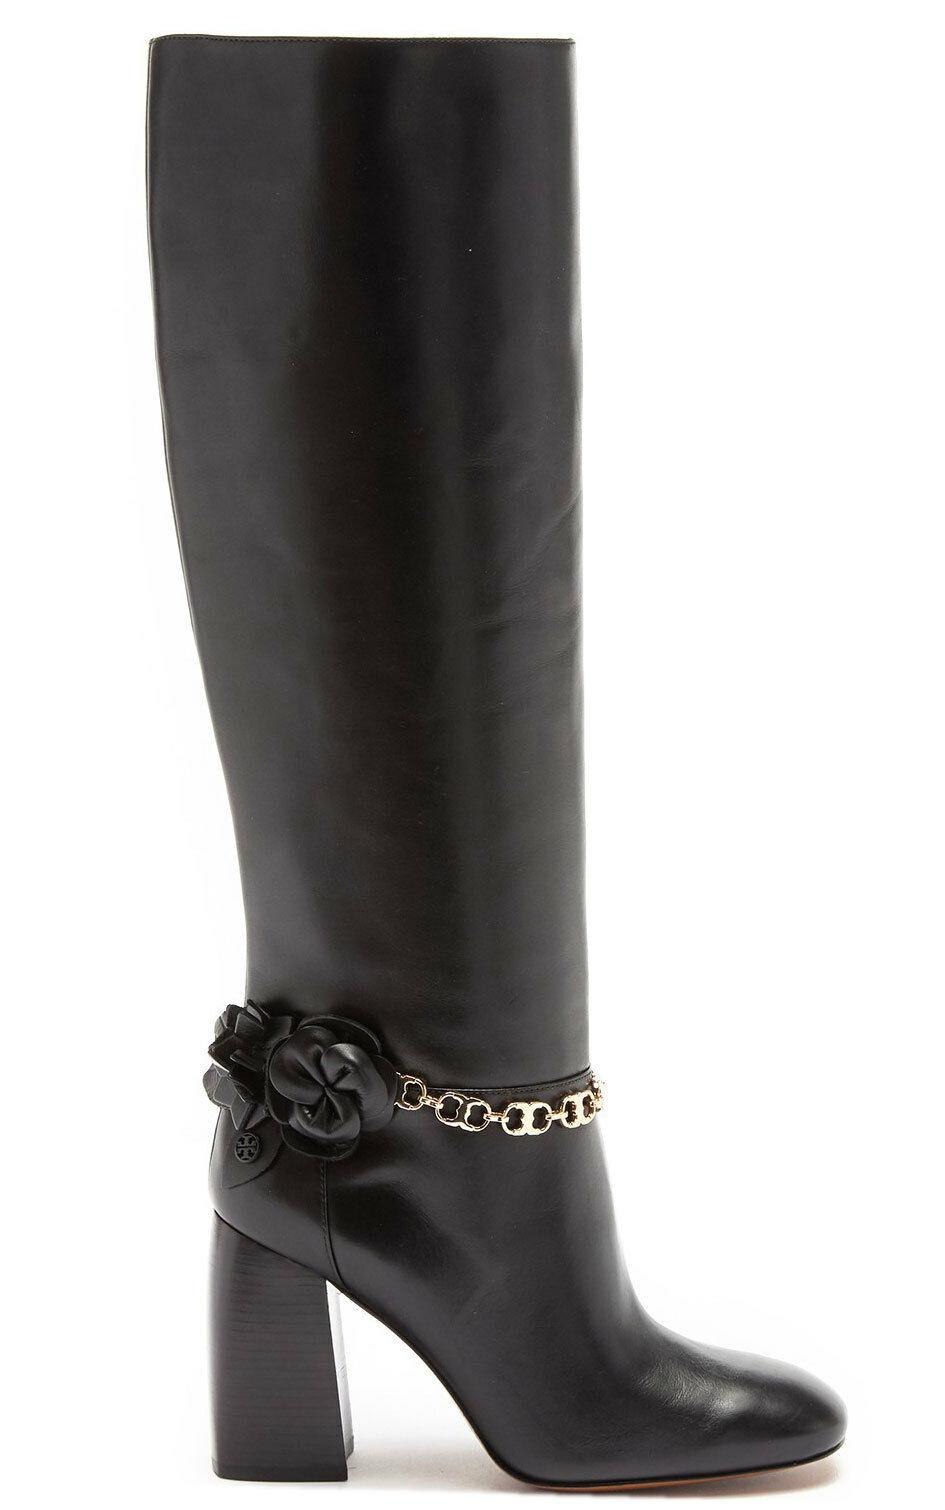 $550 Tory Burch Black Blossom Block Heel Boots Tall Knee High Booties 9.5